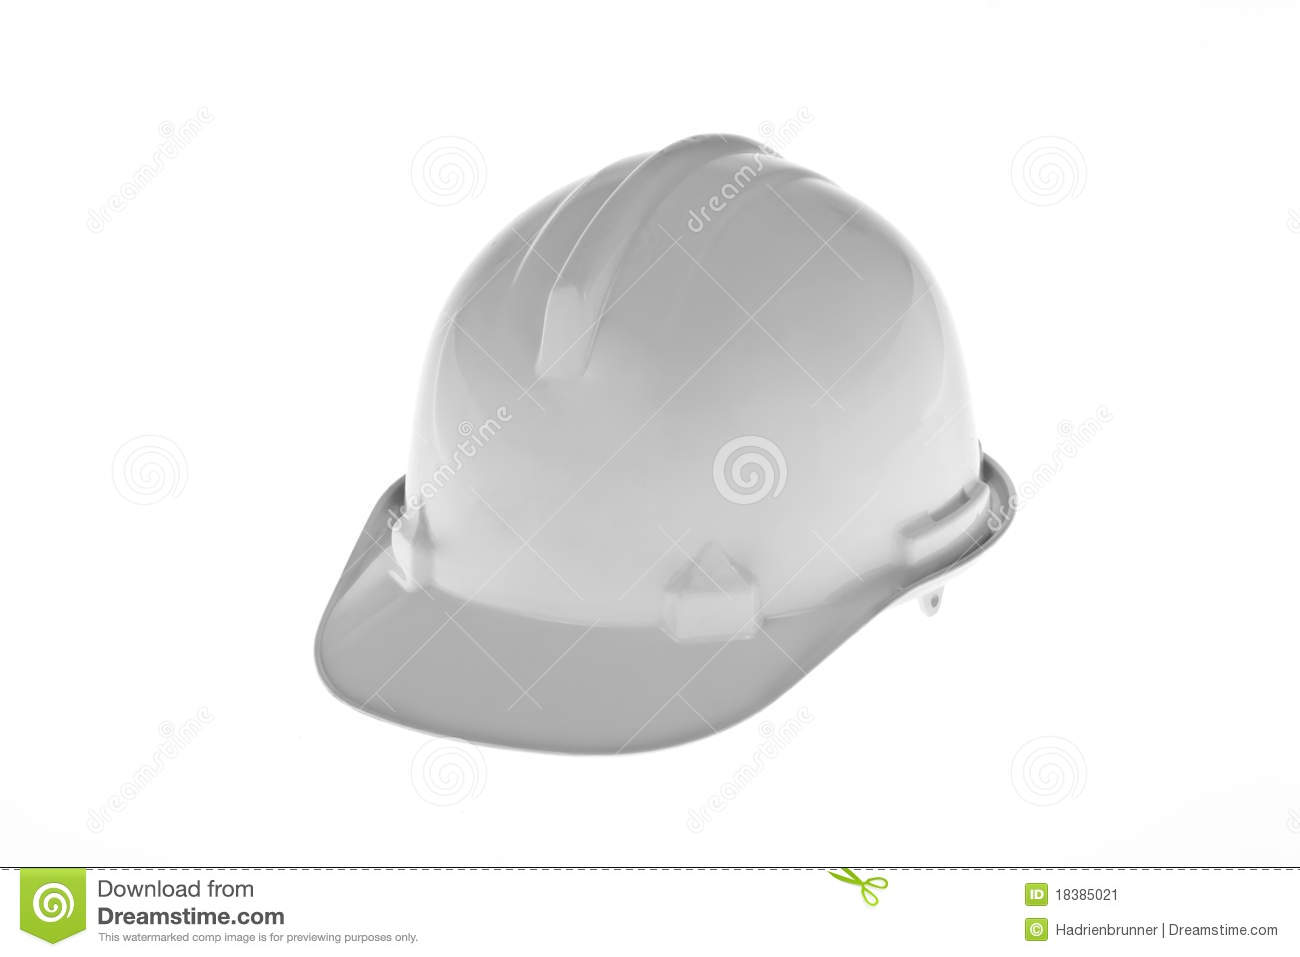 A white construction worker hard hat isolated against a white background 1a4ee1abf10